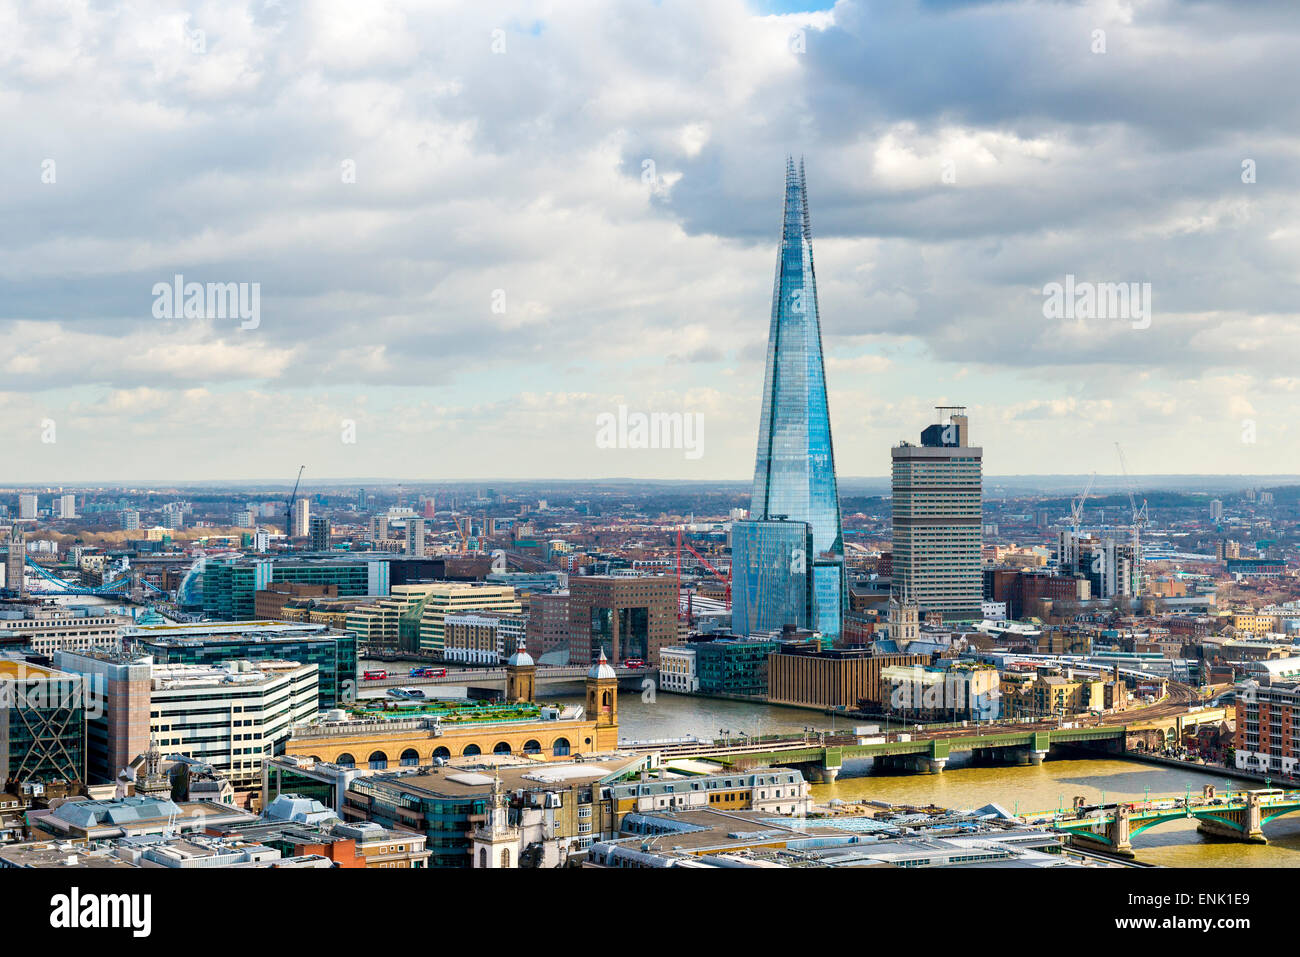 The Shard, London, England, United Kingdom, Europe - Stock Image